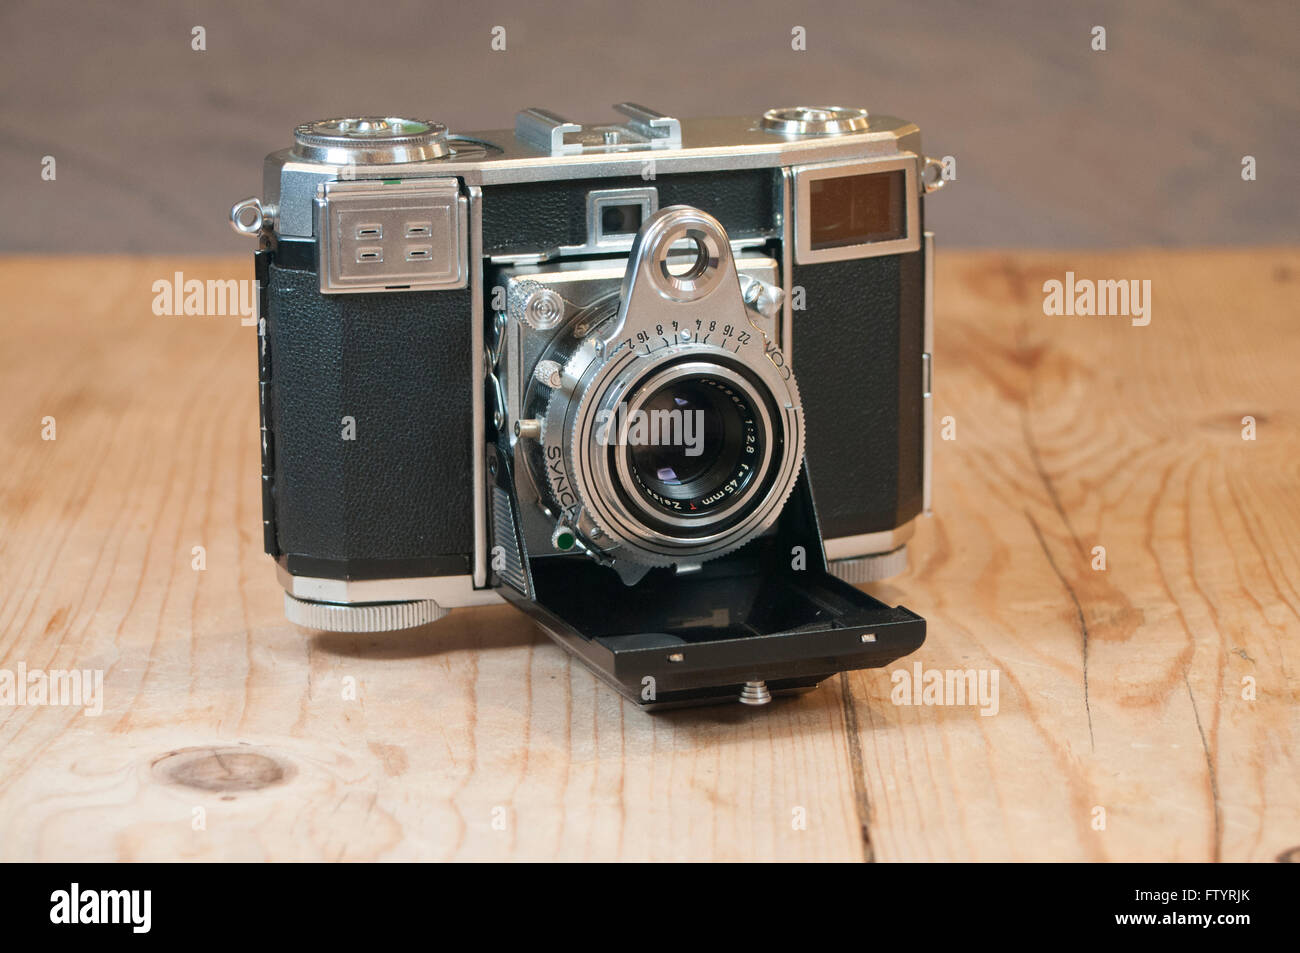 Zeiss Ikon Camera Stock Photos & Zeiss Ikon Camera Stock